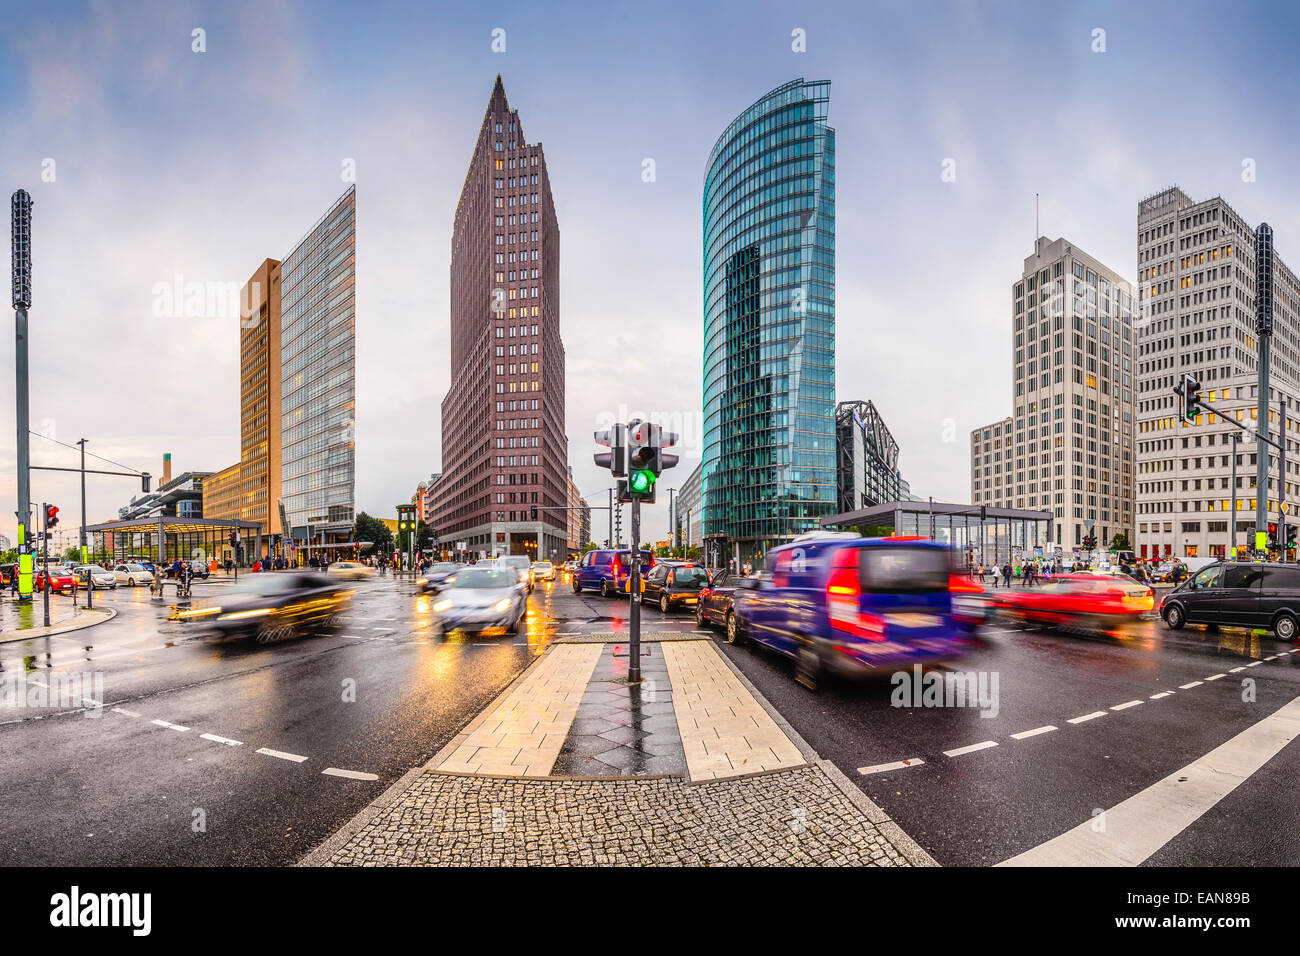 Berlin, Allemagne ville au quartier financier de la Potsdamer Platz. Photo Stock